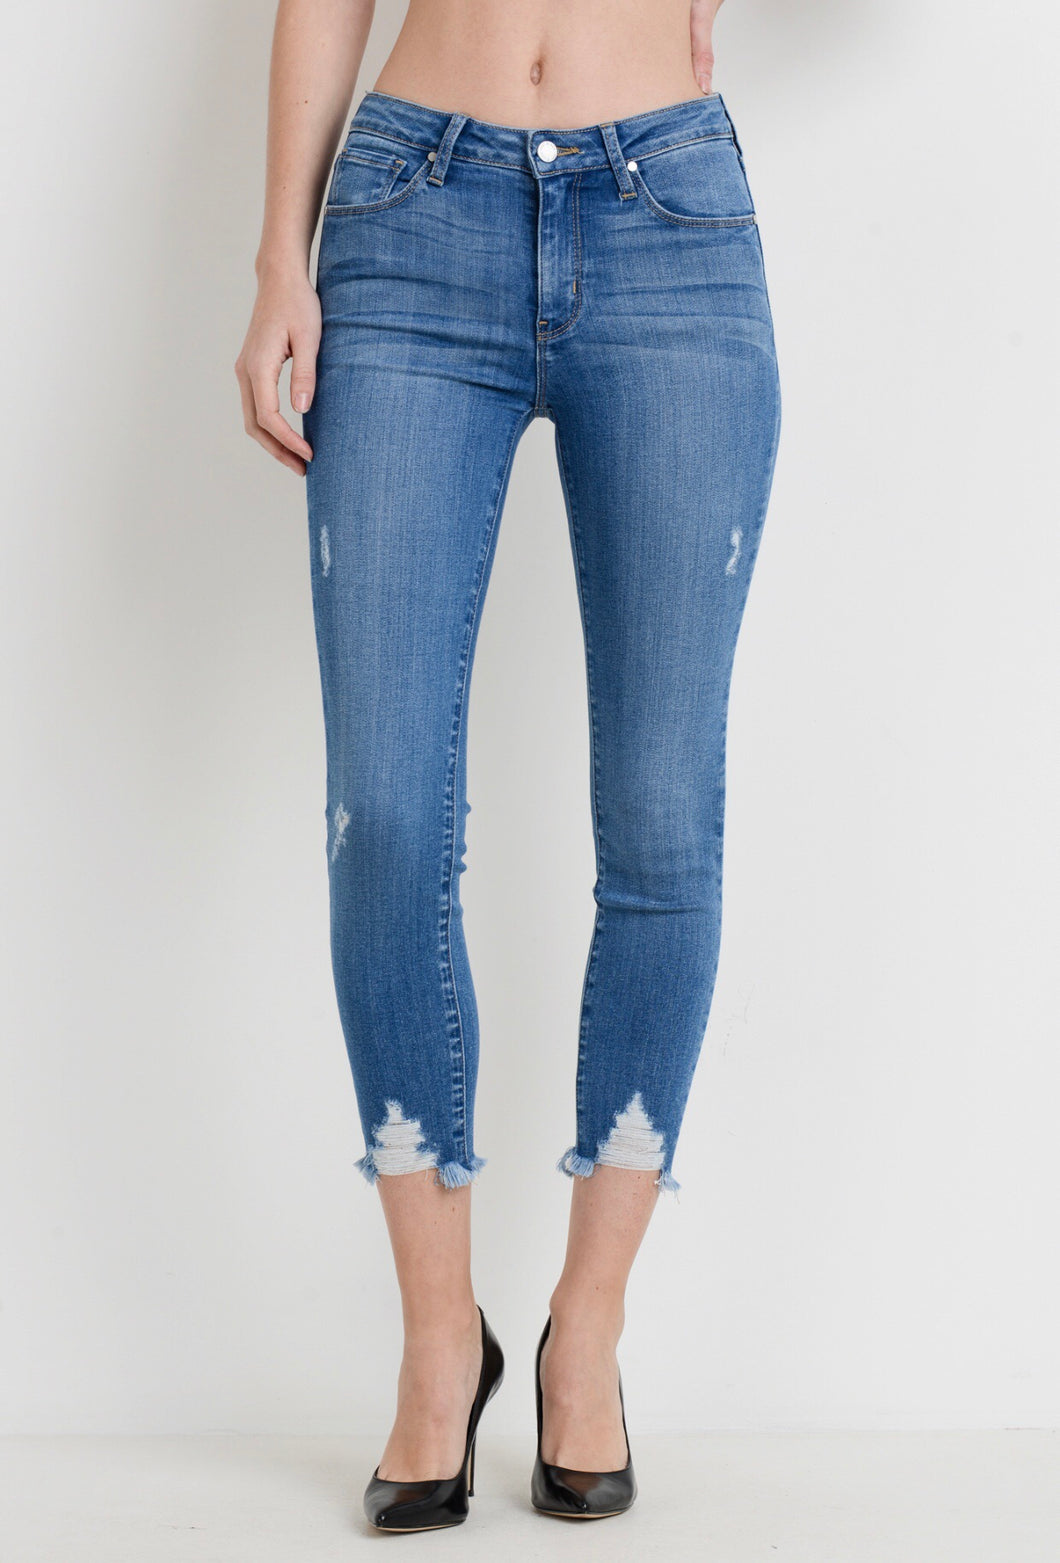 Stephanie Jeans- Blue Denim